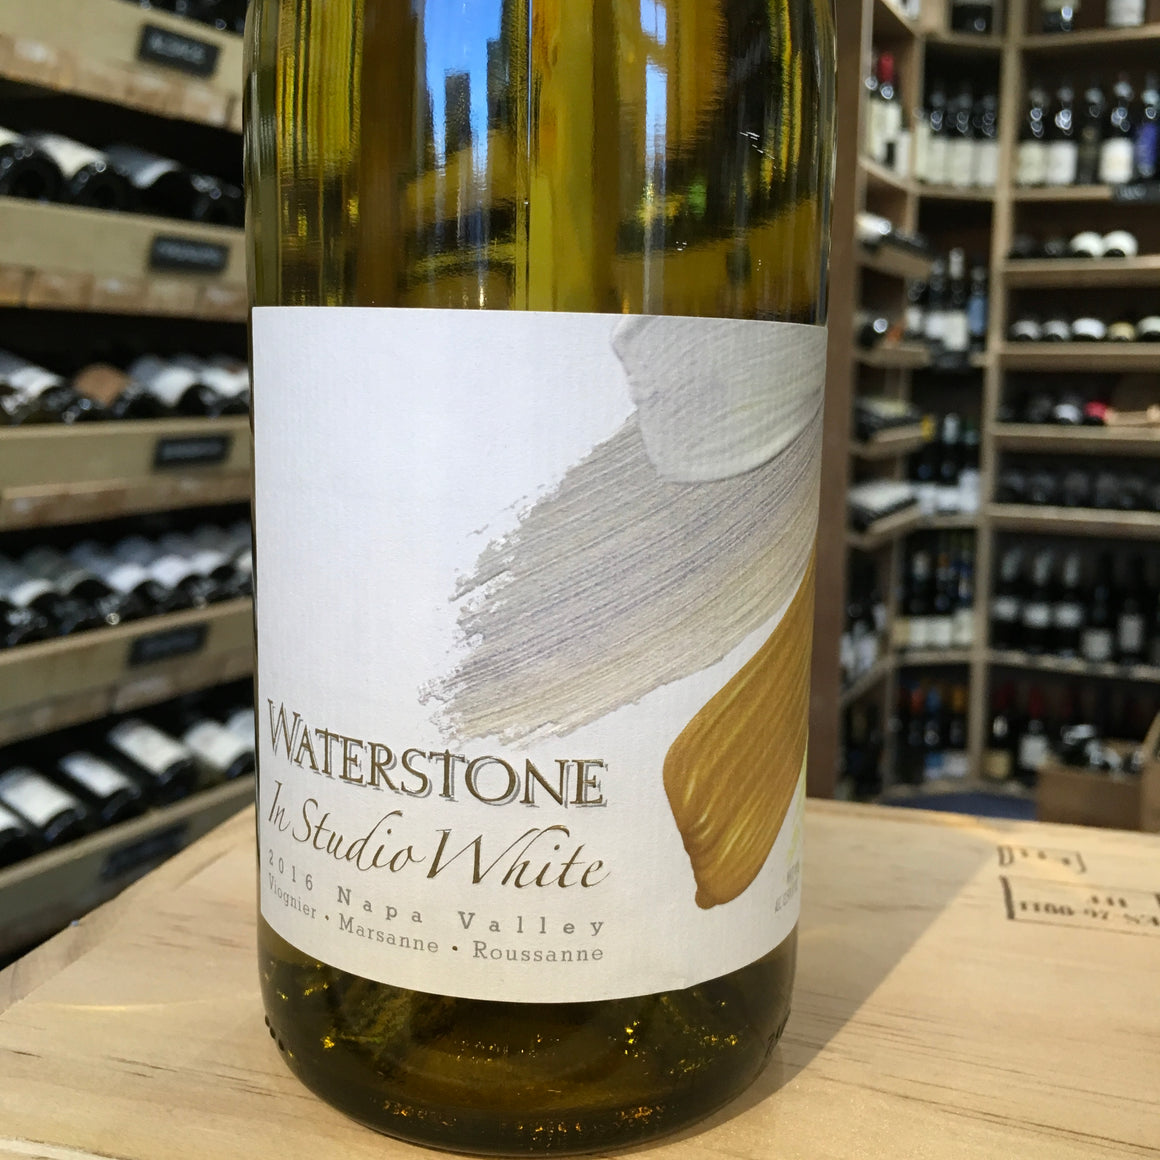 Waterstone In Studio White Napa Valley 2016 - Butlers Wine Cellar Brighton